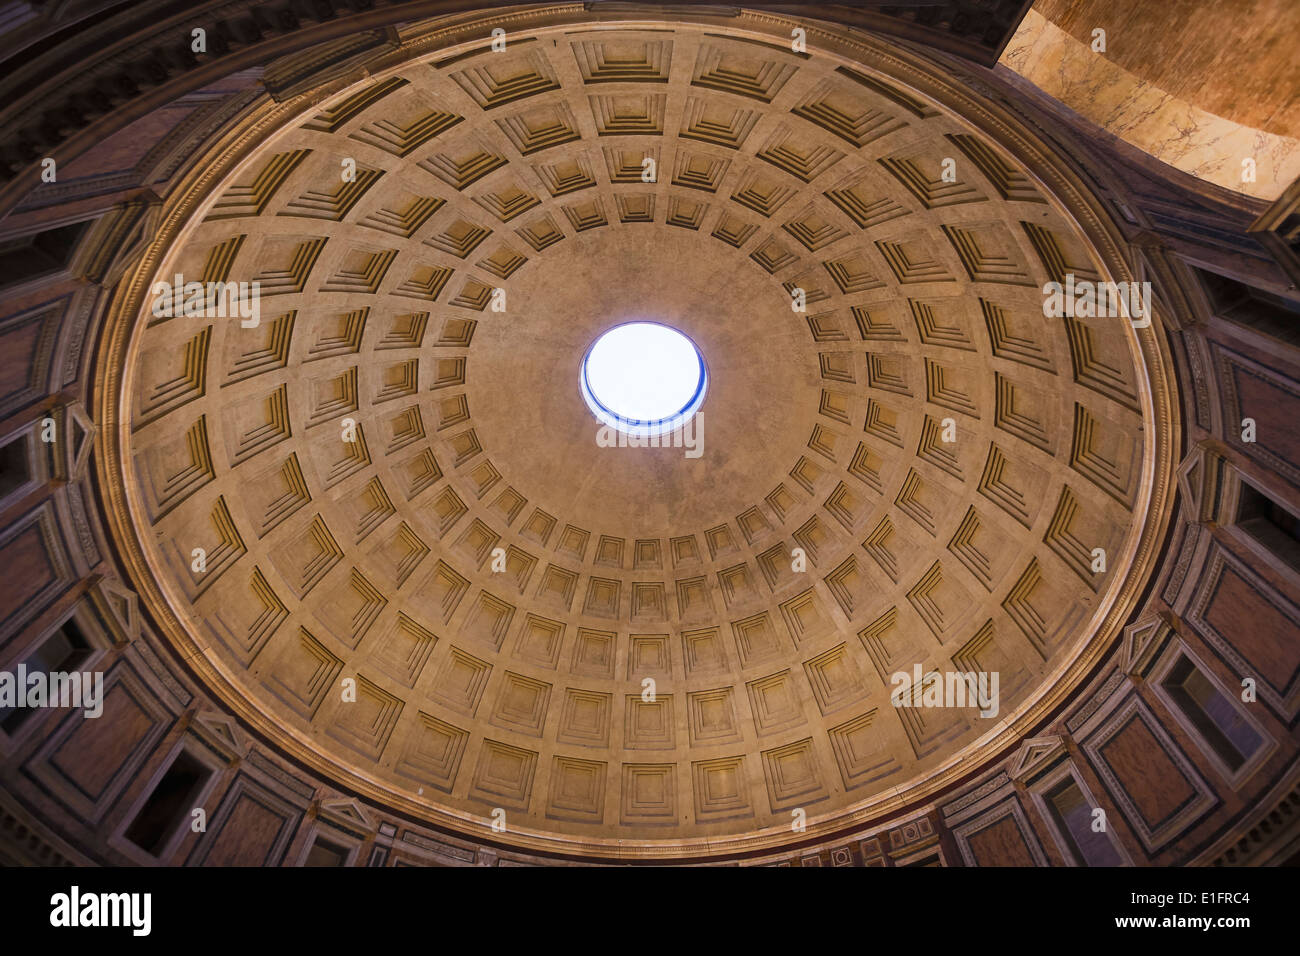 rome italy the dome of the pantheon interior the concrete dome